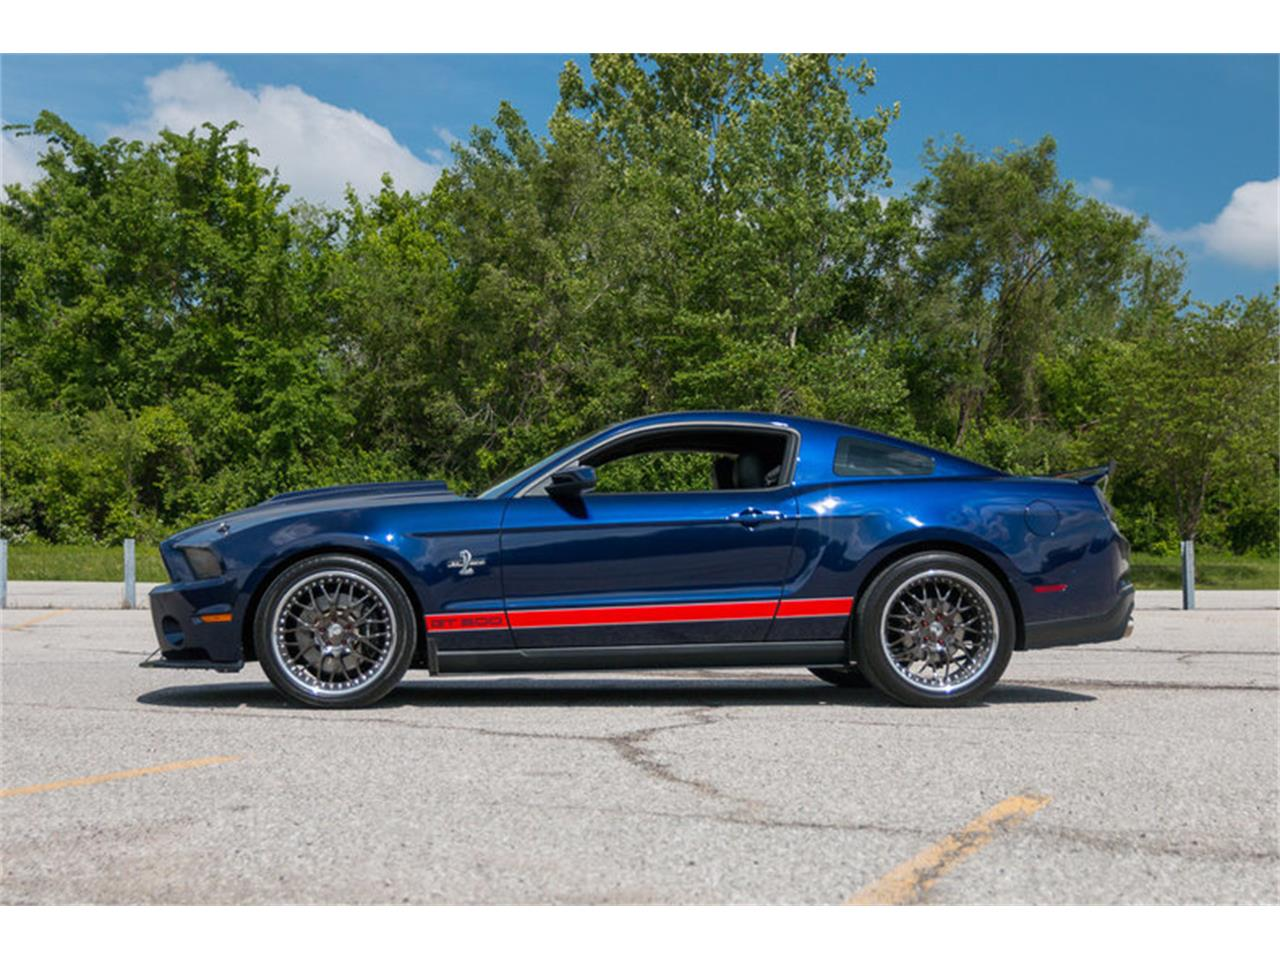 Large Picture of 2011 Shelby GT500 located in Missouri - $54,995.00 - L3G7